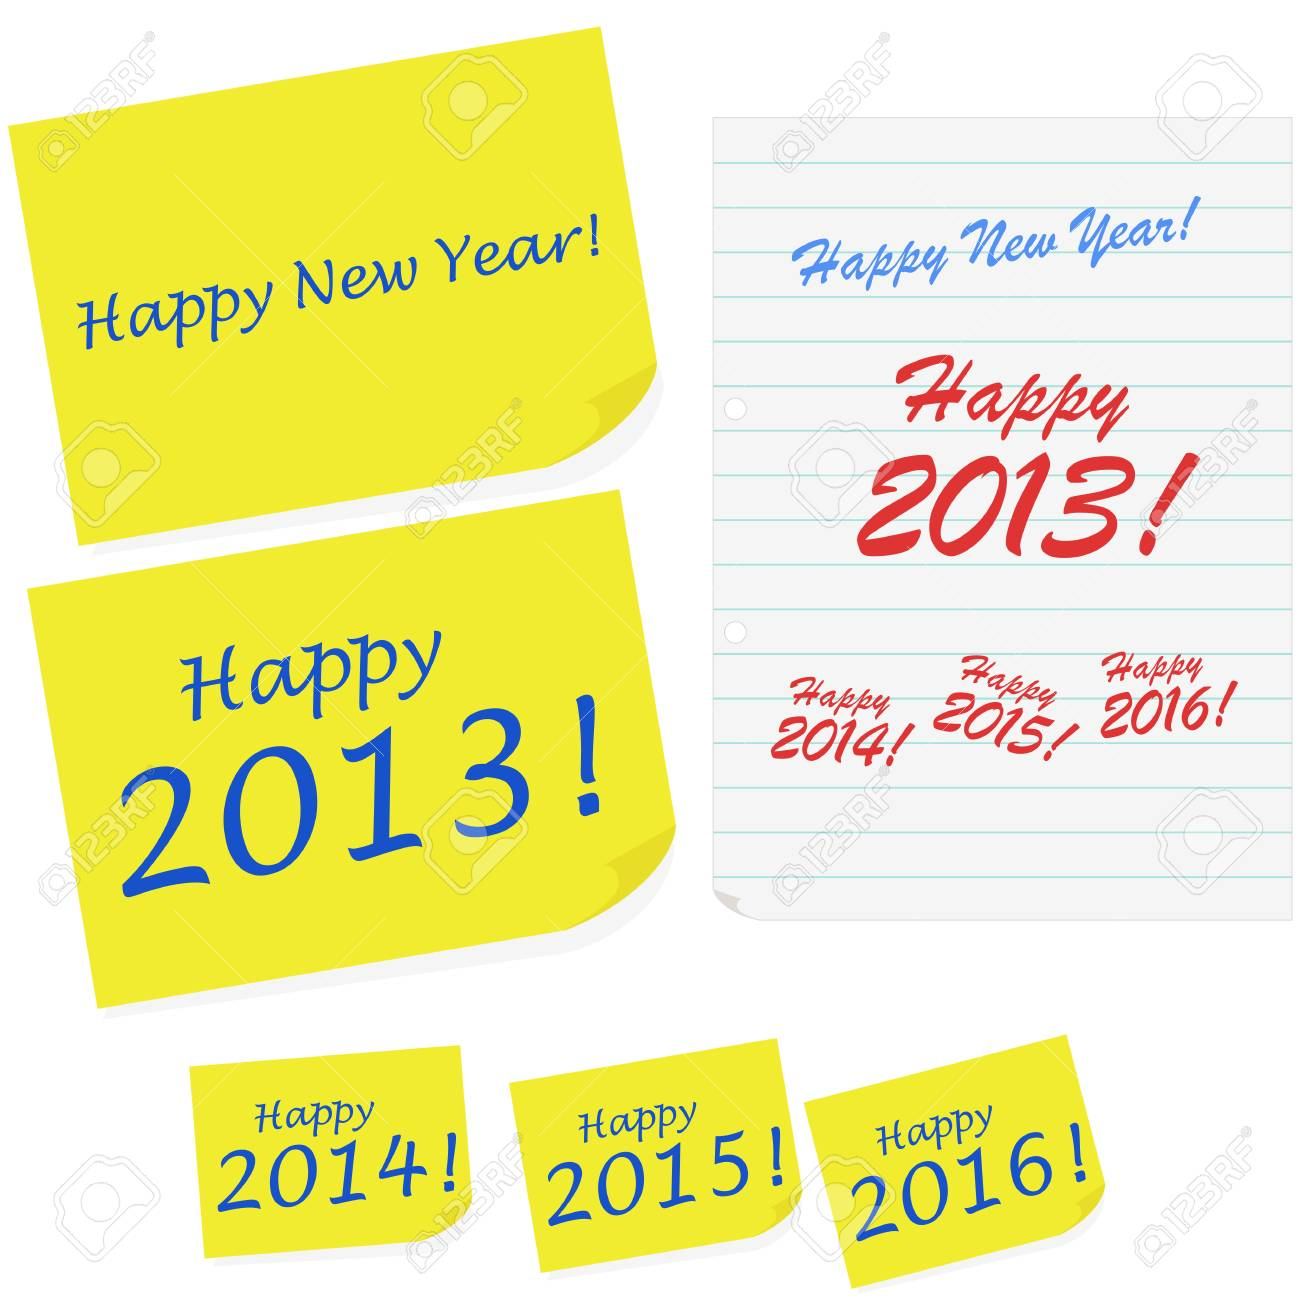 Illustration showing Happy New Year messages written in sticky notes and notebook paper Stock Vector - 16616707